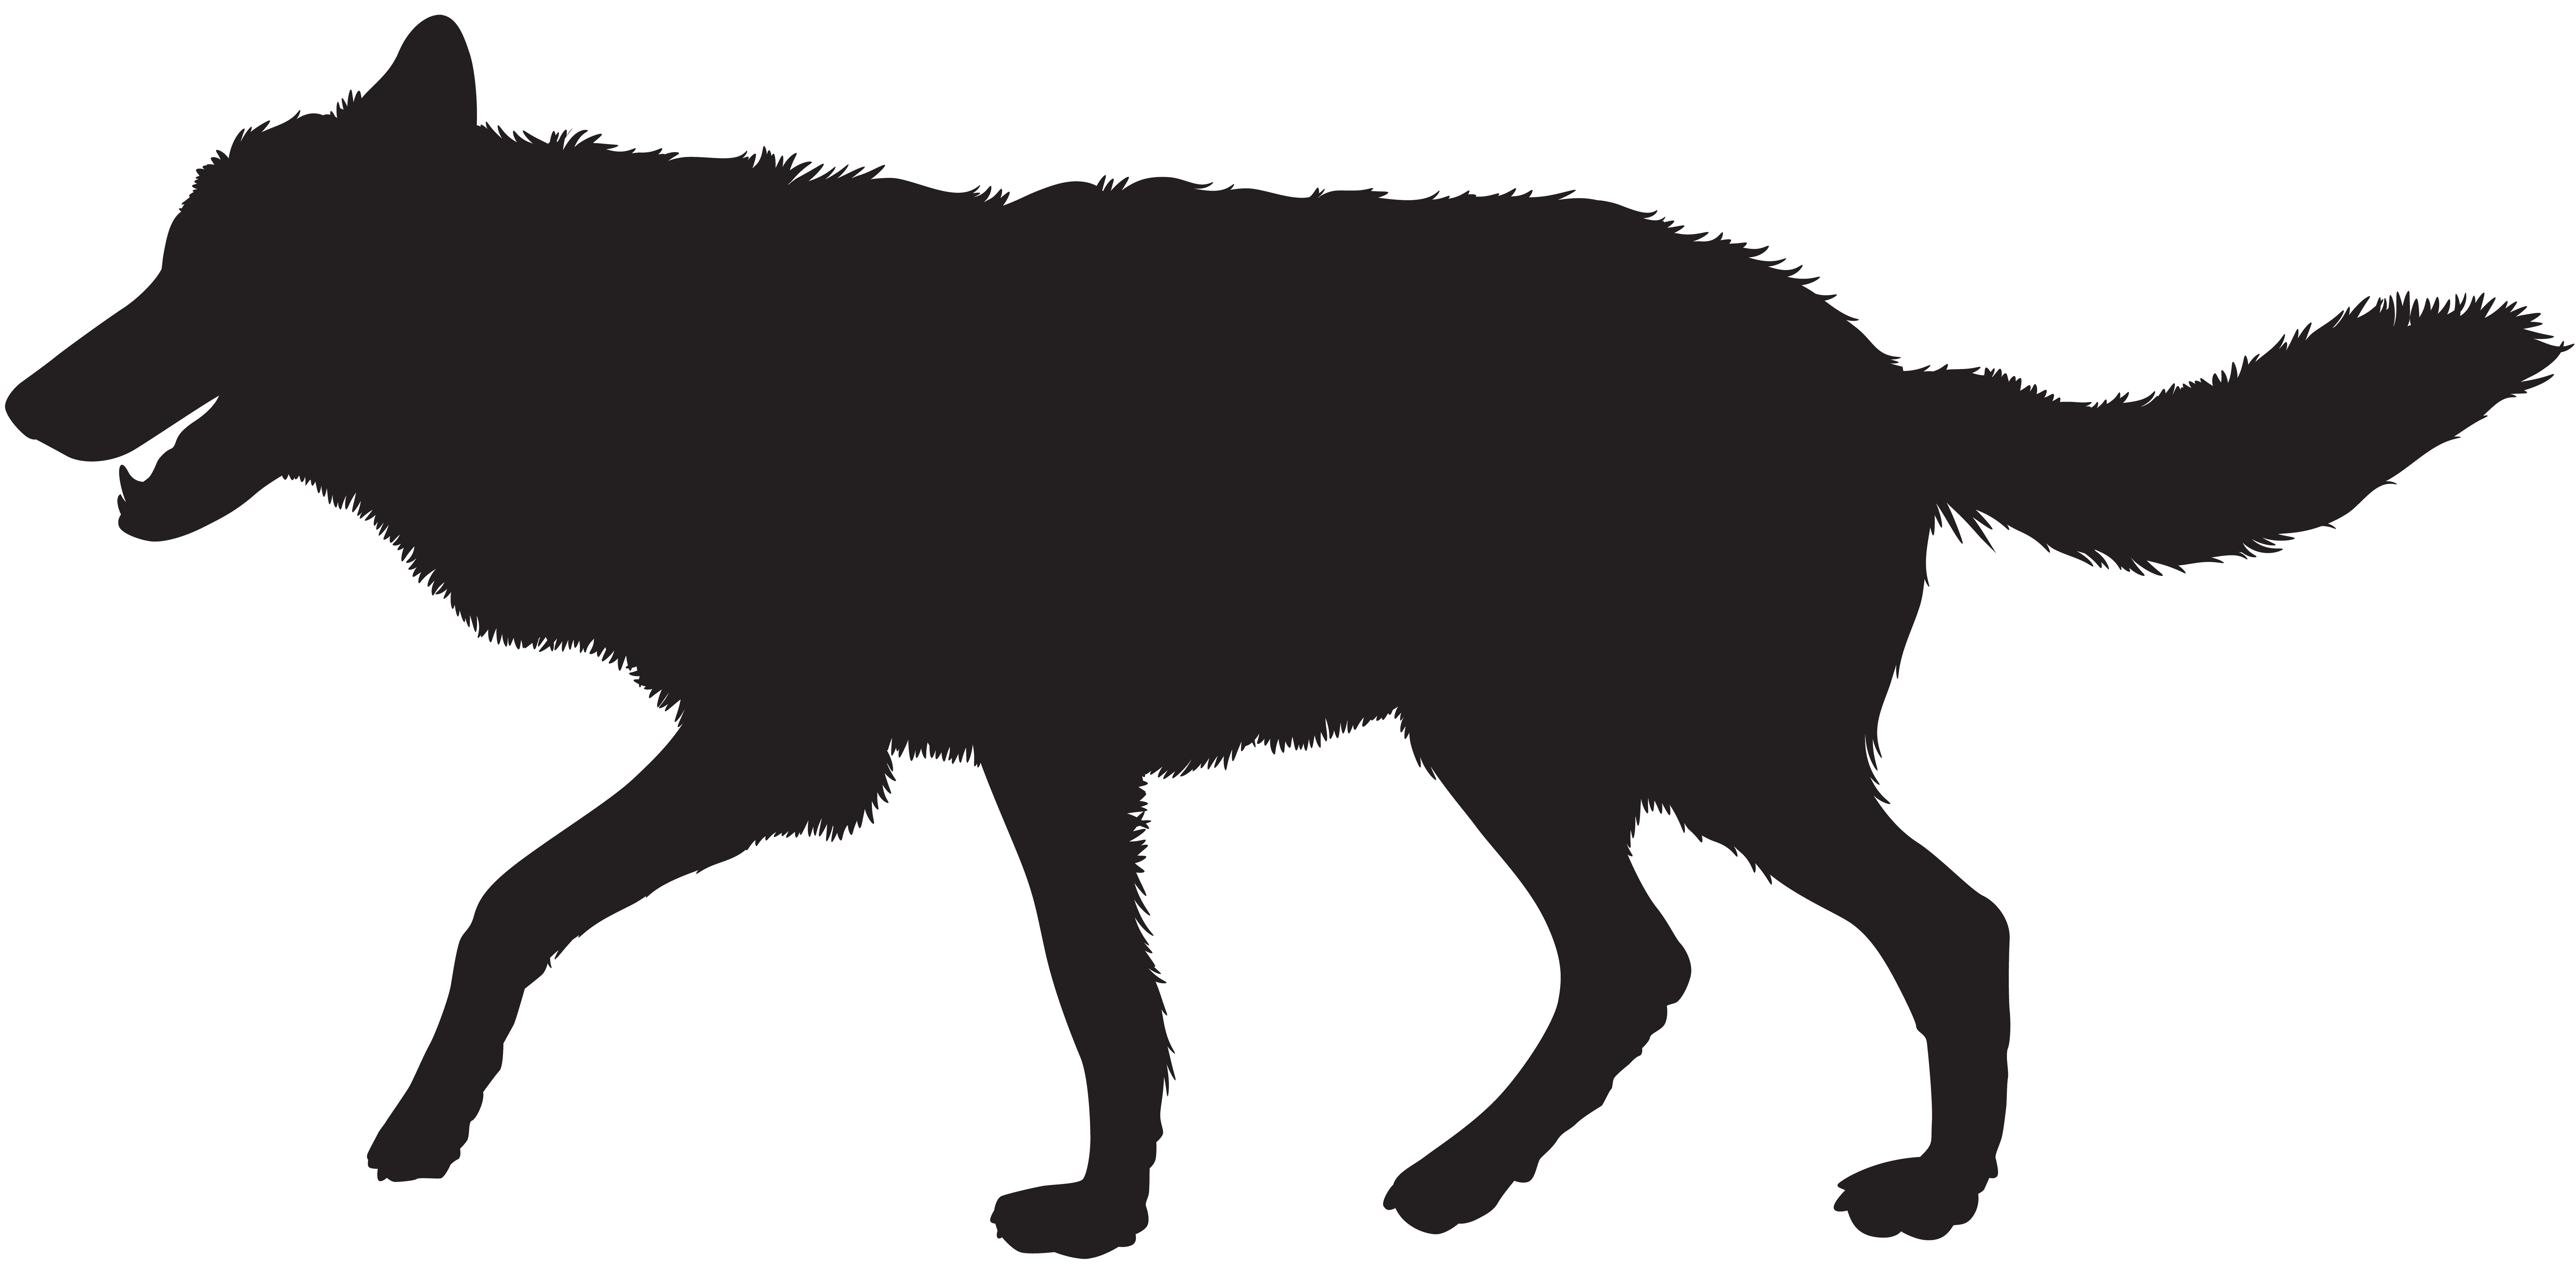 clipart royalty free download Wolf clipart png. Silhouette clip art image